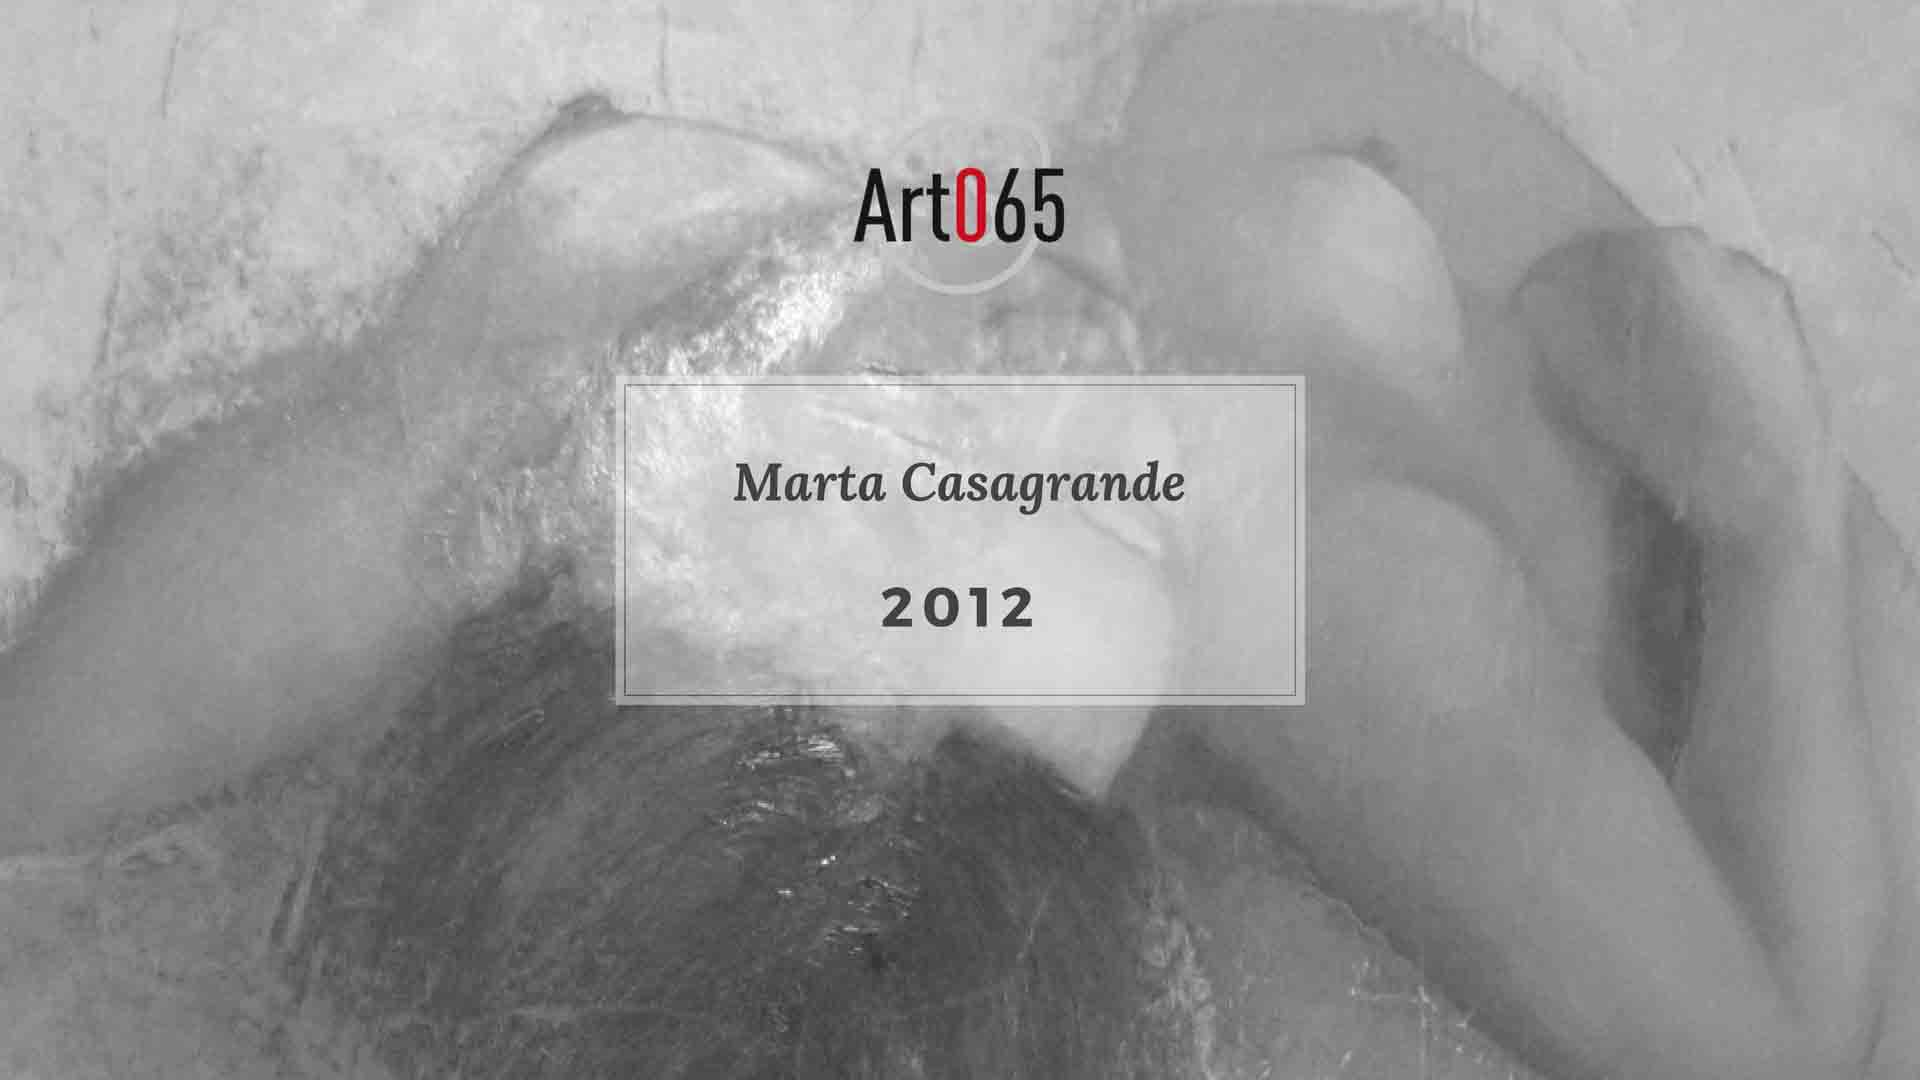 Marta Casagrande - 2011 Art065